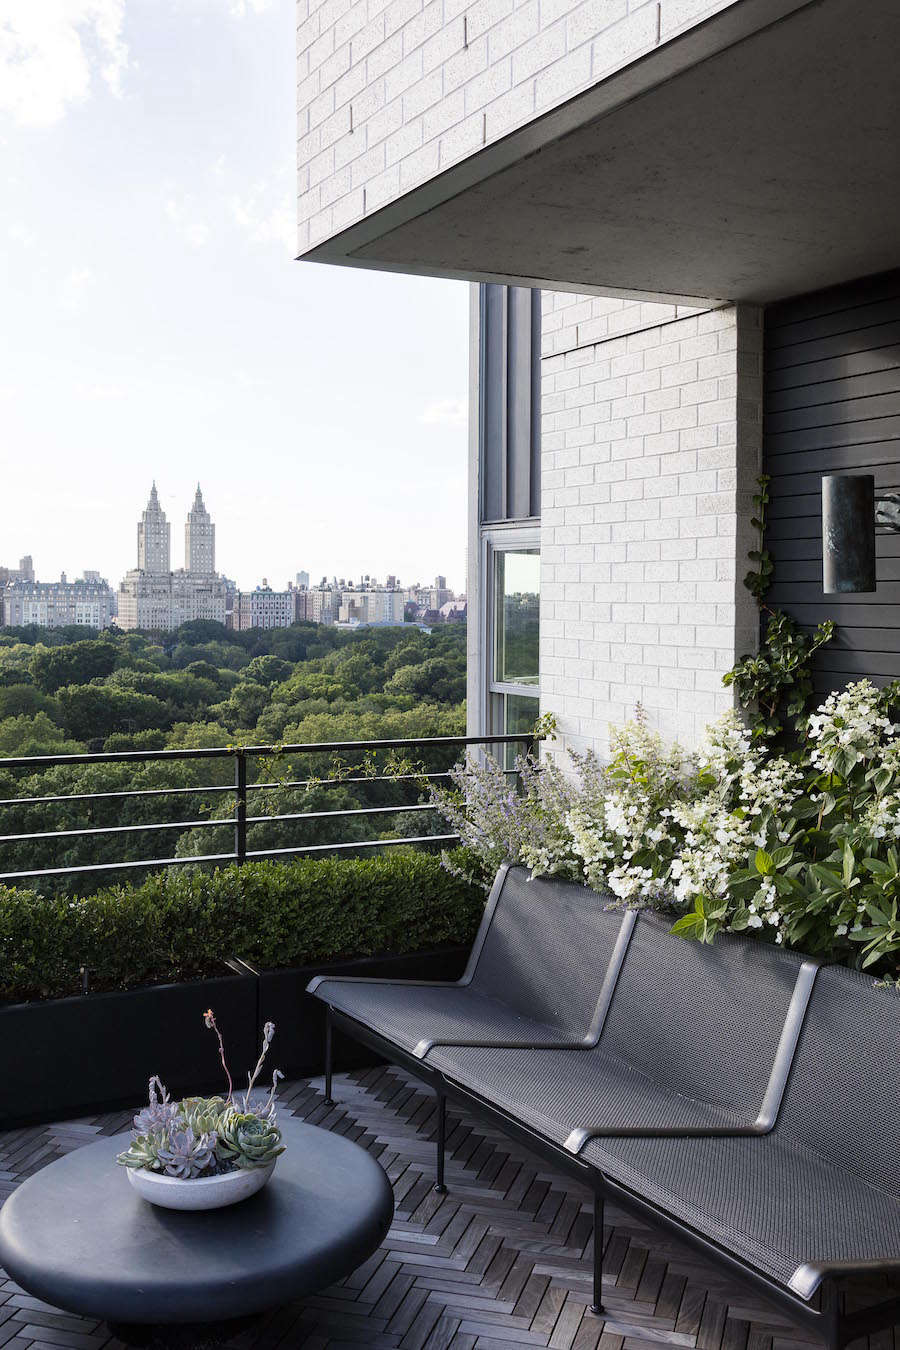 Mingling with white hydrangea (Hydrangea anomala petiolaris)in a planting box on a Manhattan balcony is N. faassenii 'Walker's Low'. See more inGarden Designer Visit: A Manhattan Terrace with Panoramic Central Park Views.Photograph courtesy ofNicholas Calcott.